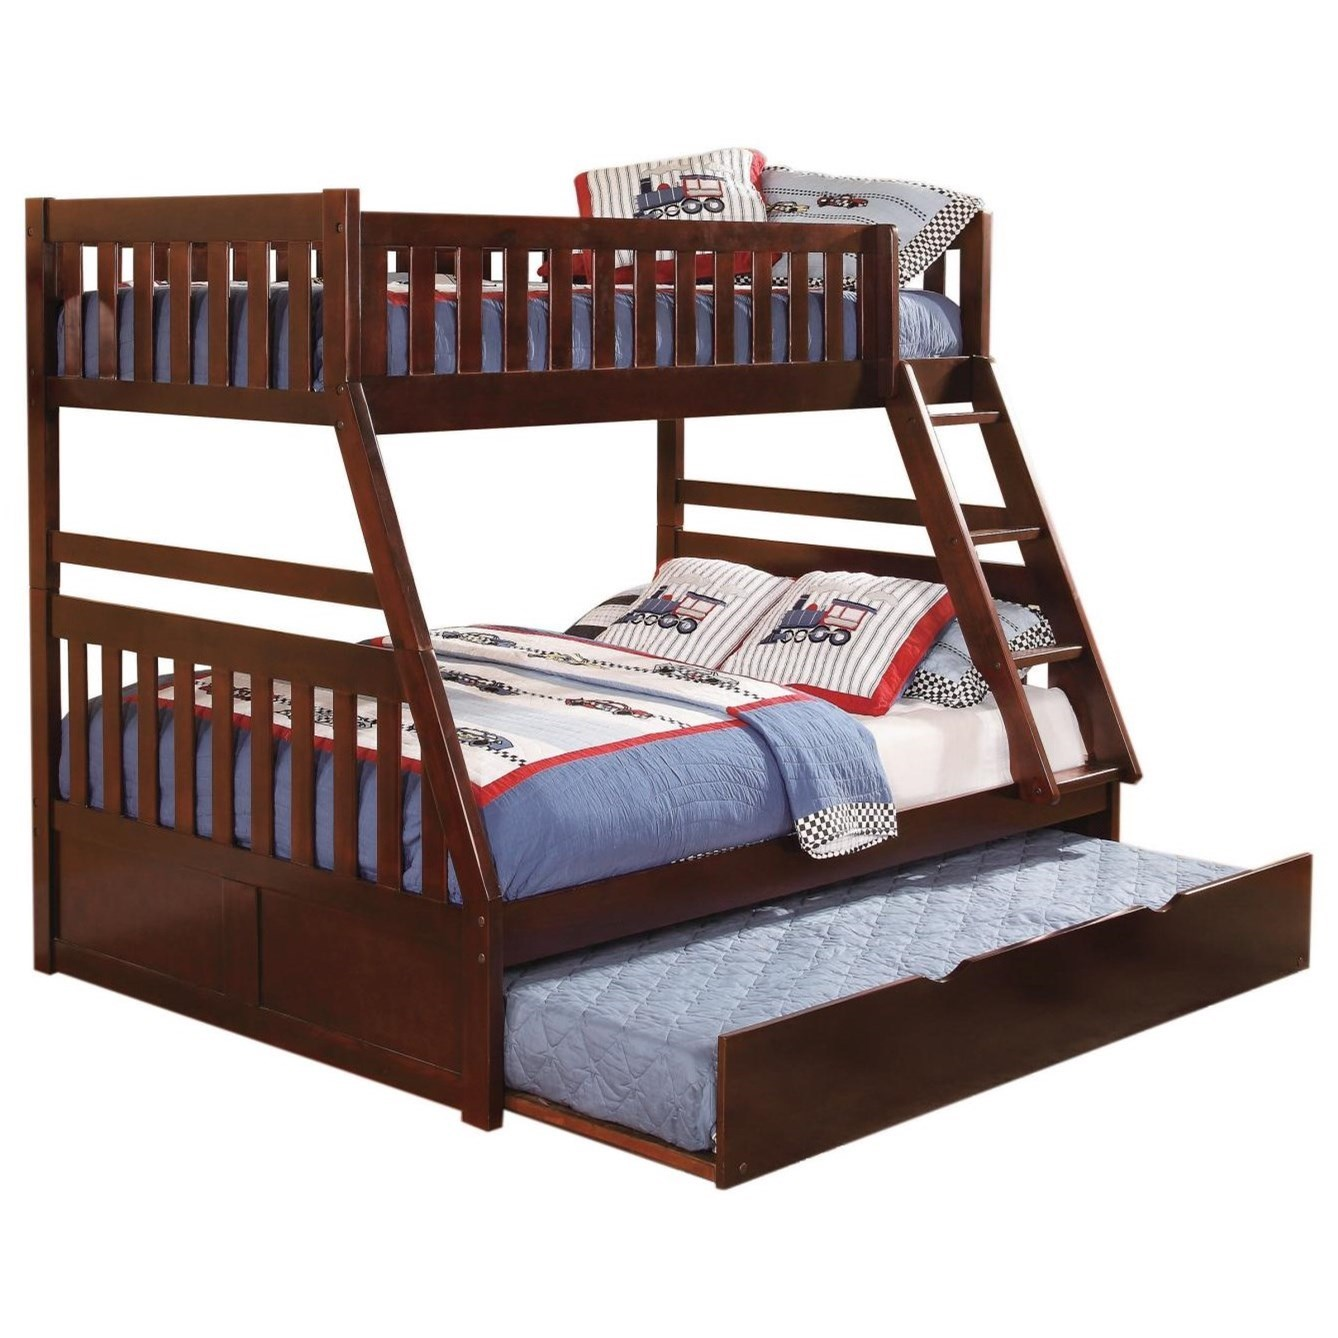 Cherry Twin Over Full Trundle Bunk Bed by Home Style at Walker's Furniture